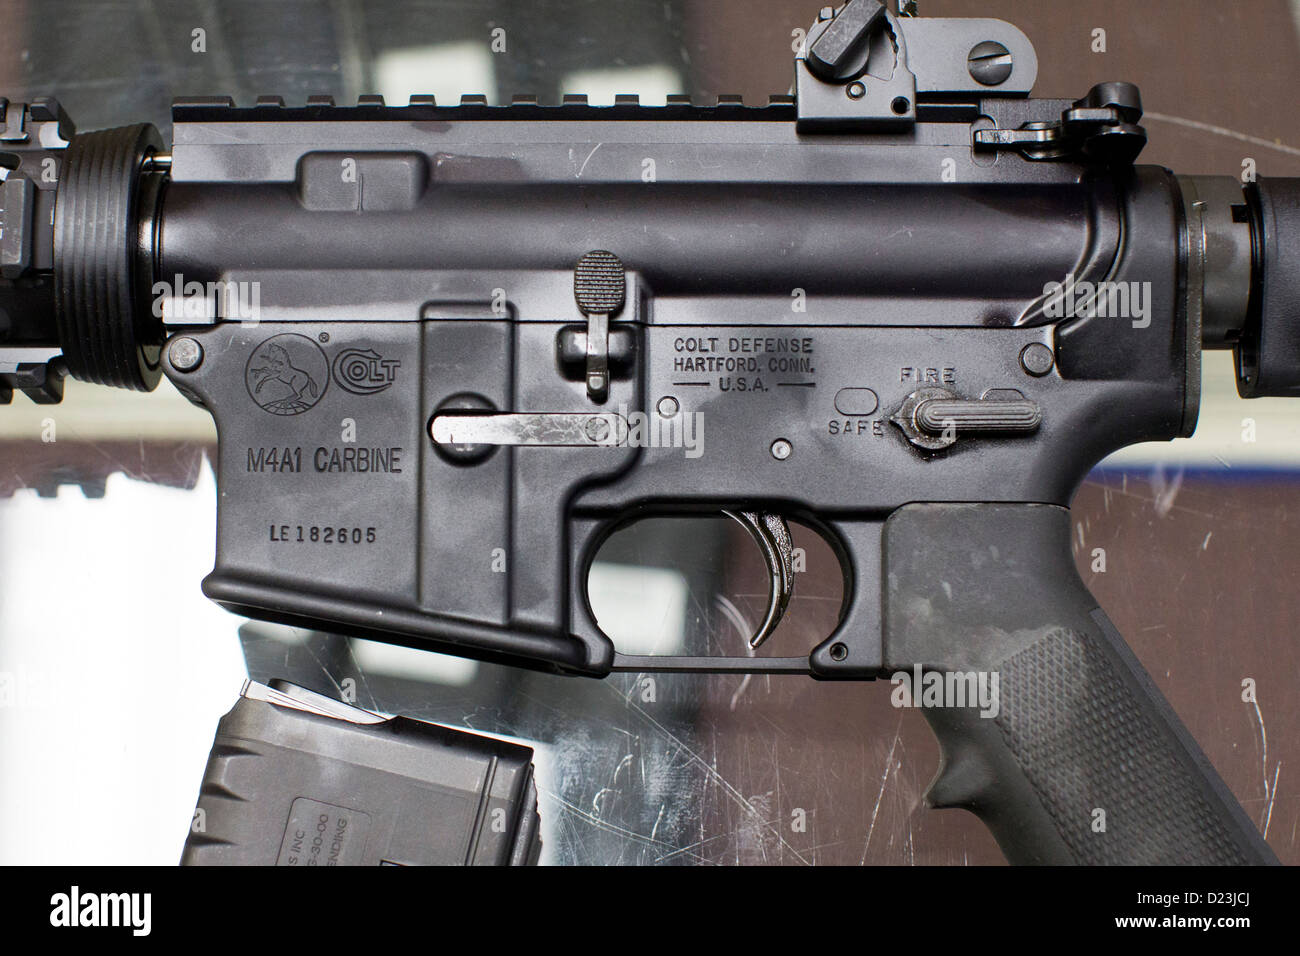 A Colt Defense M4A1 Carbine assault rifle on display at a gun shop with high capacity 30 round magazines.  - Stock Image